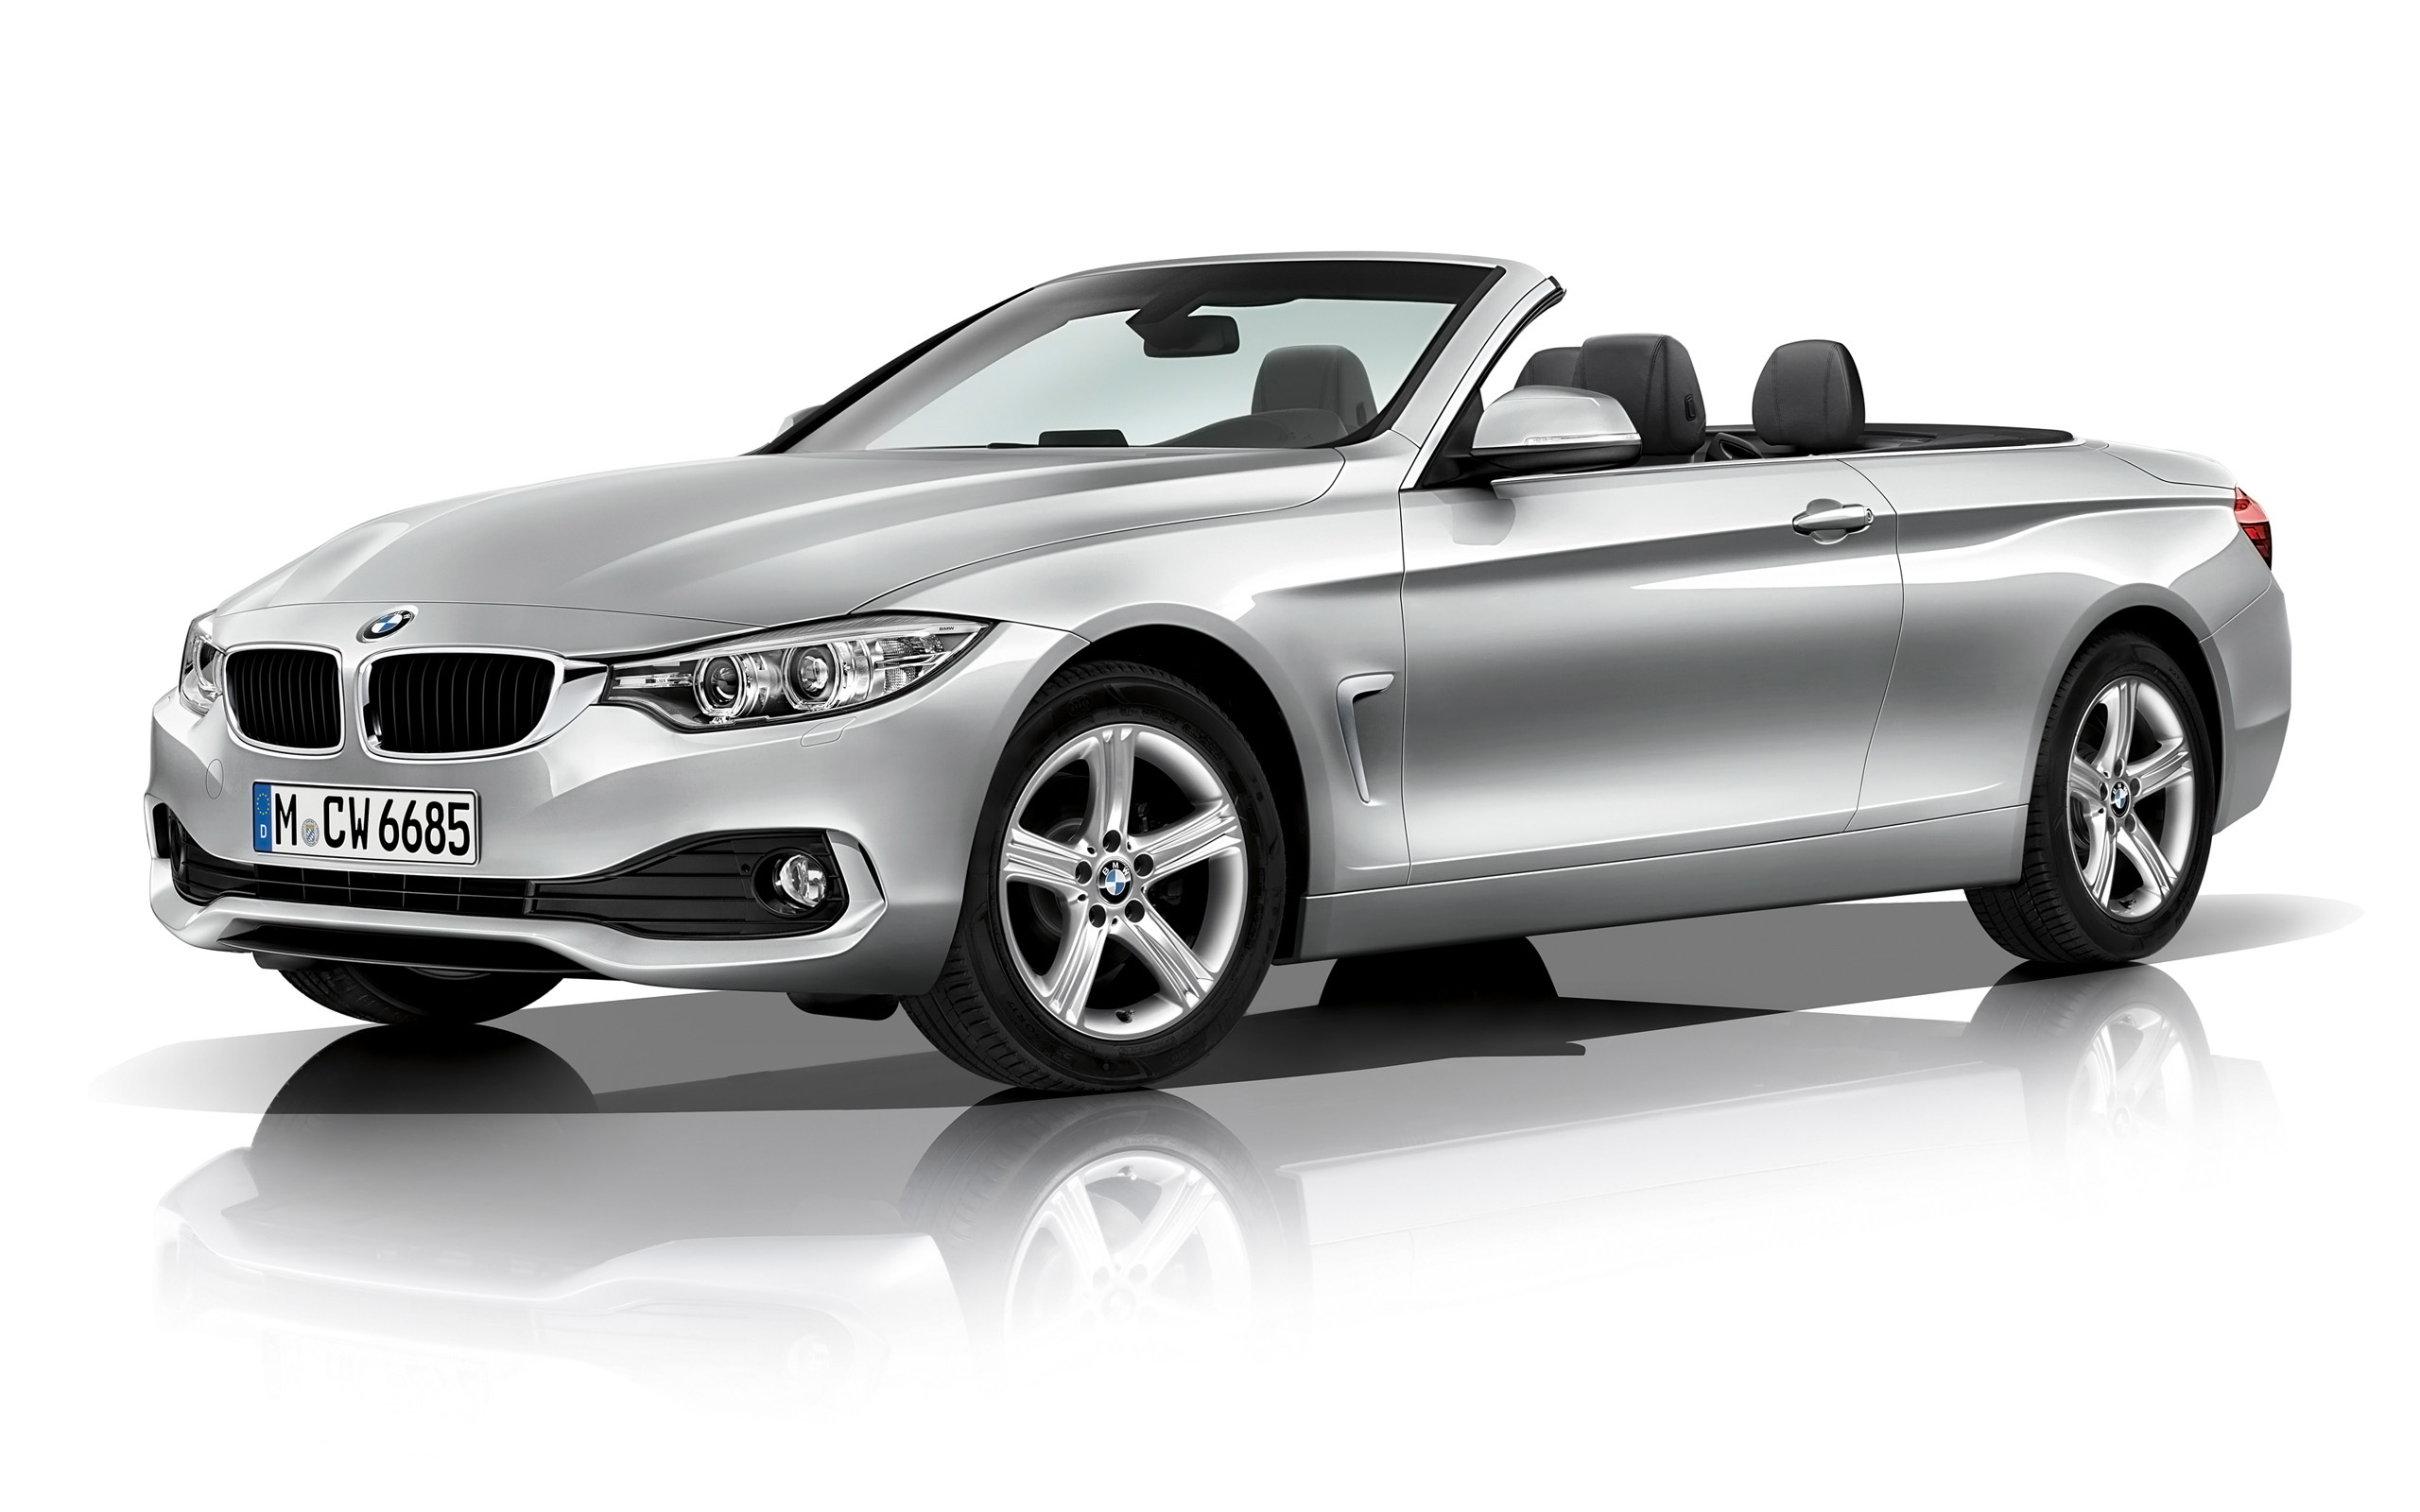 2018 BMW 3 Series Convertible photo - 4